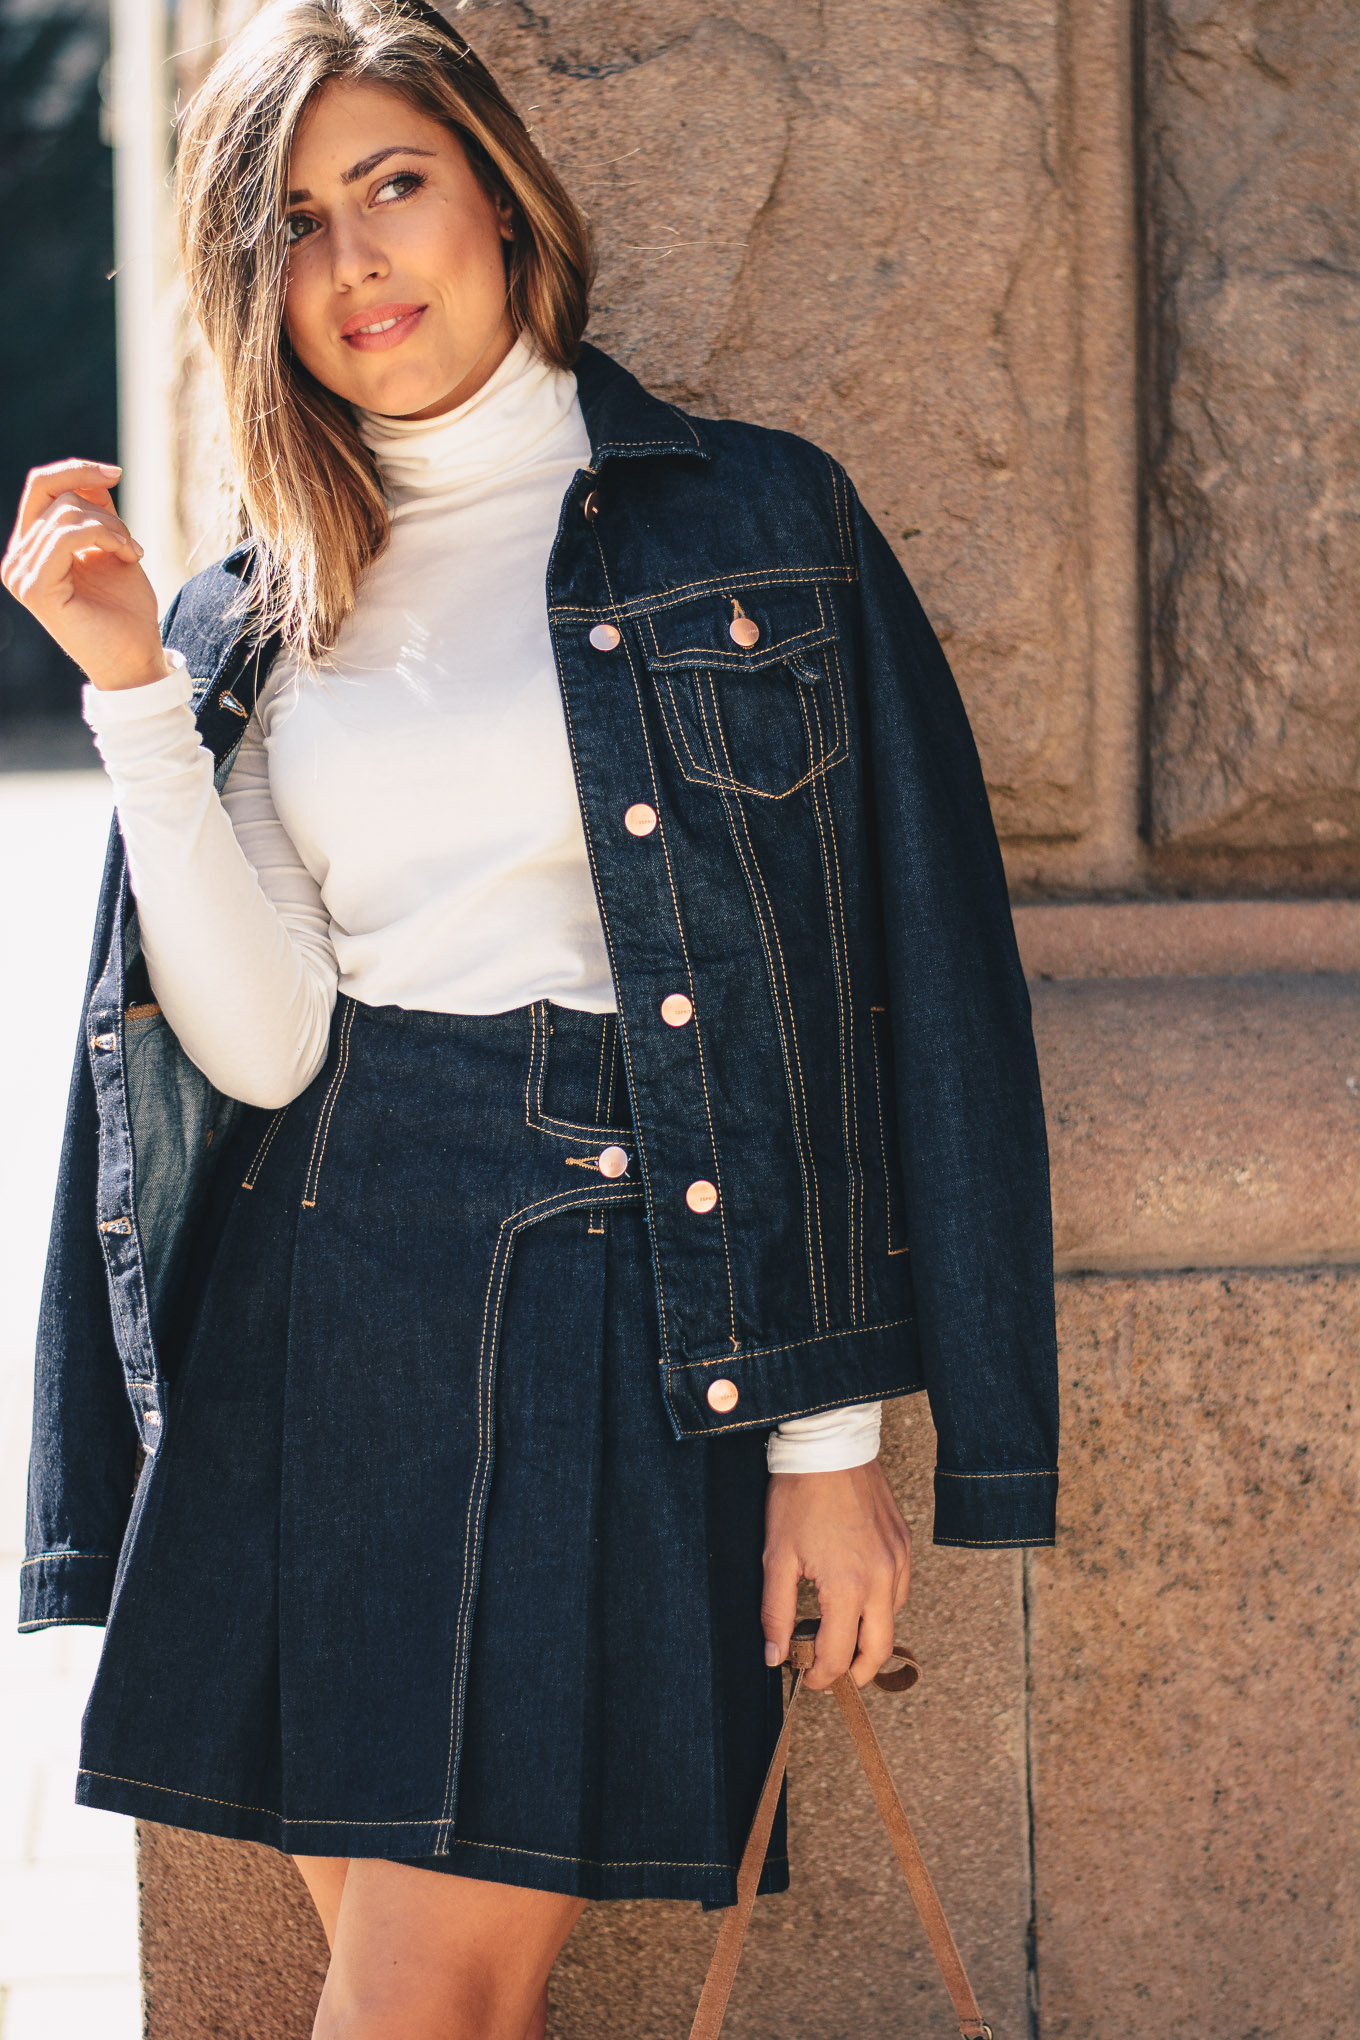 Western style influence denim set